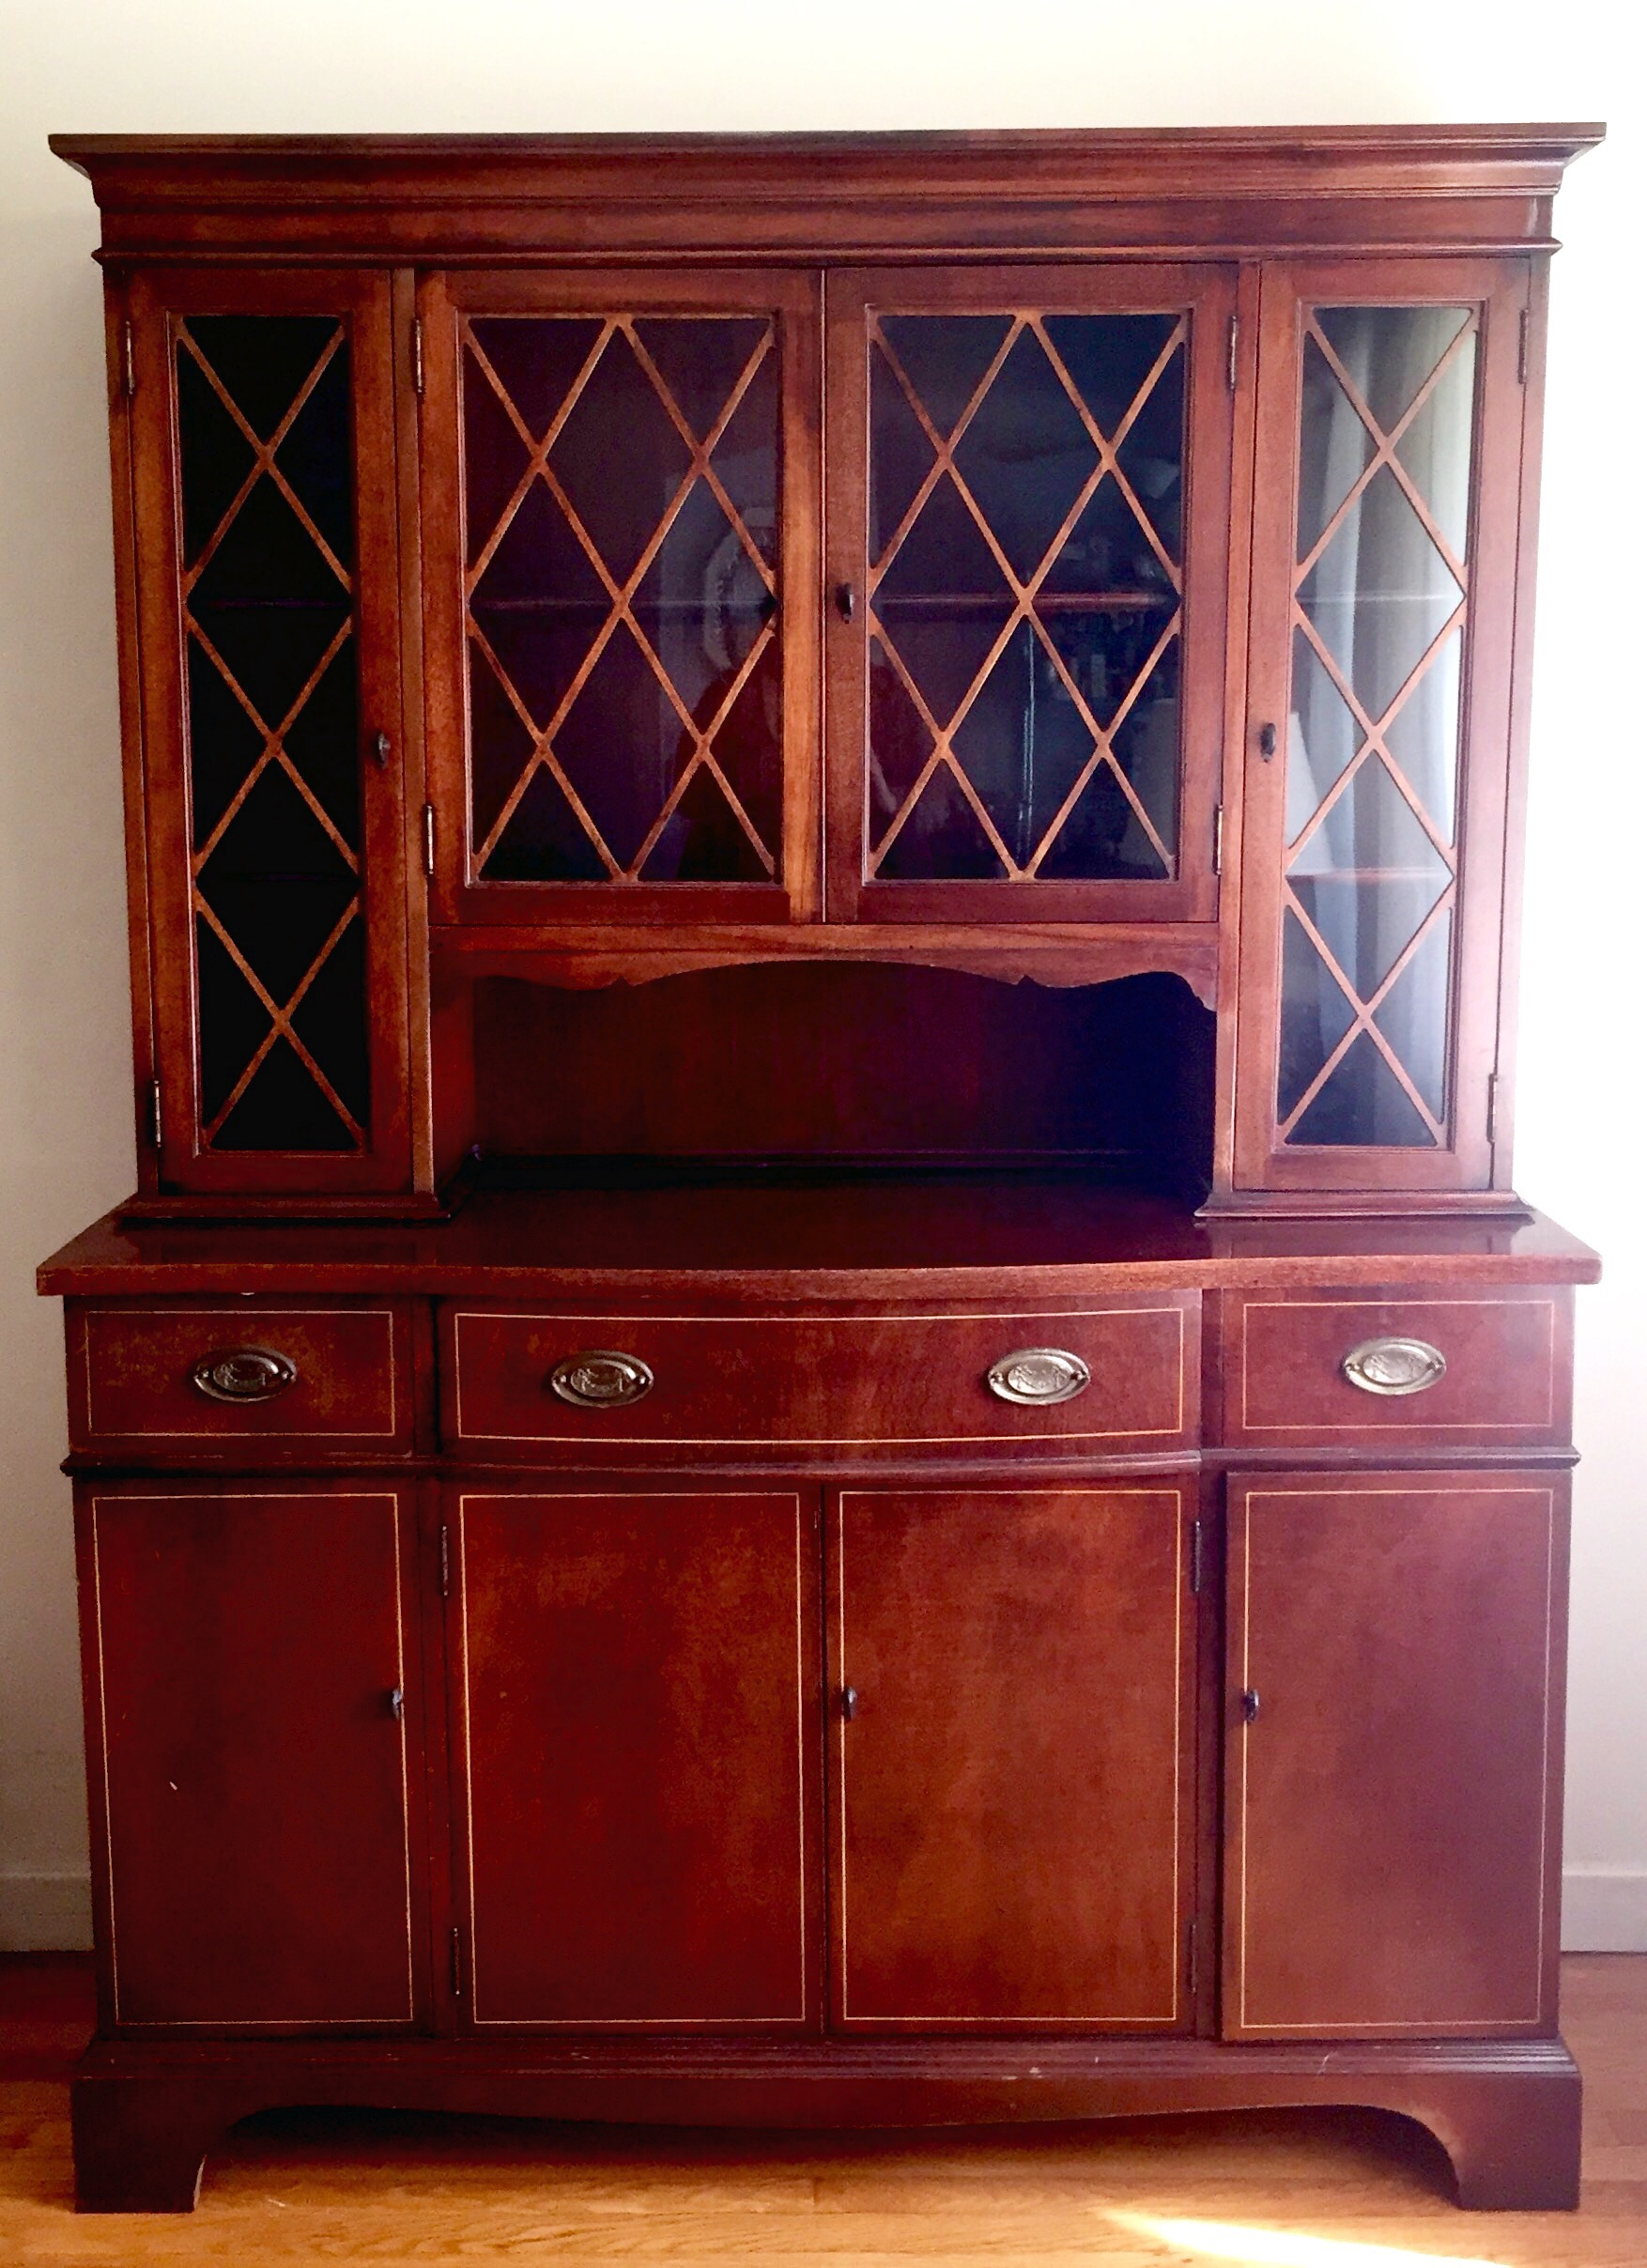 This Is The Cabinet Before Refinishing: